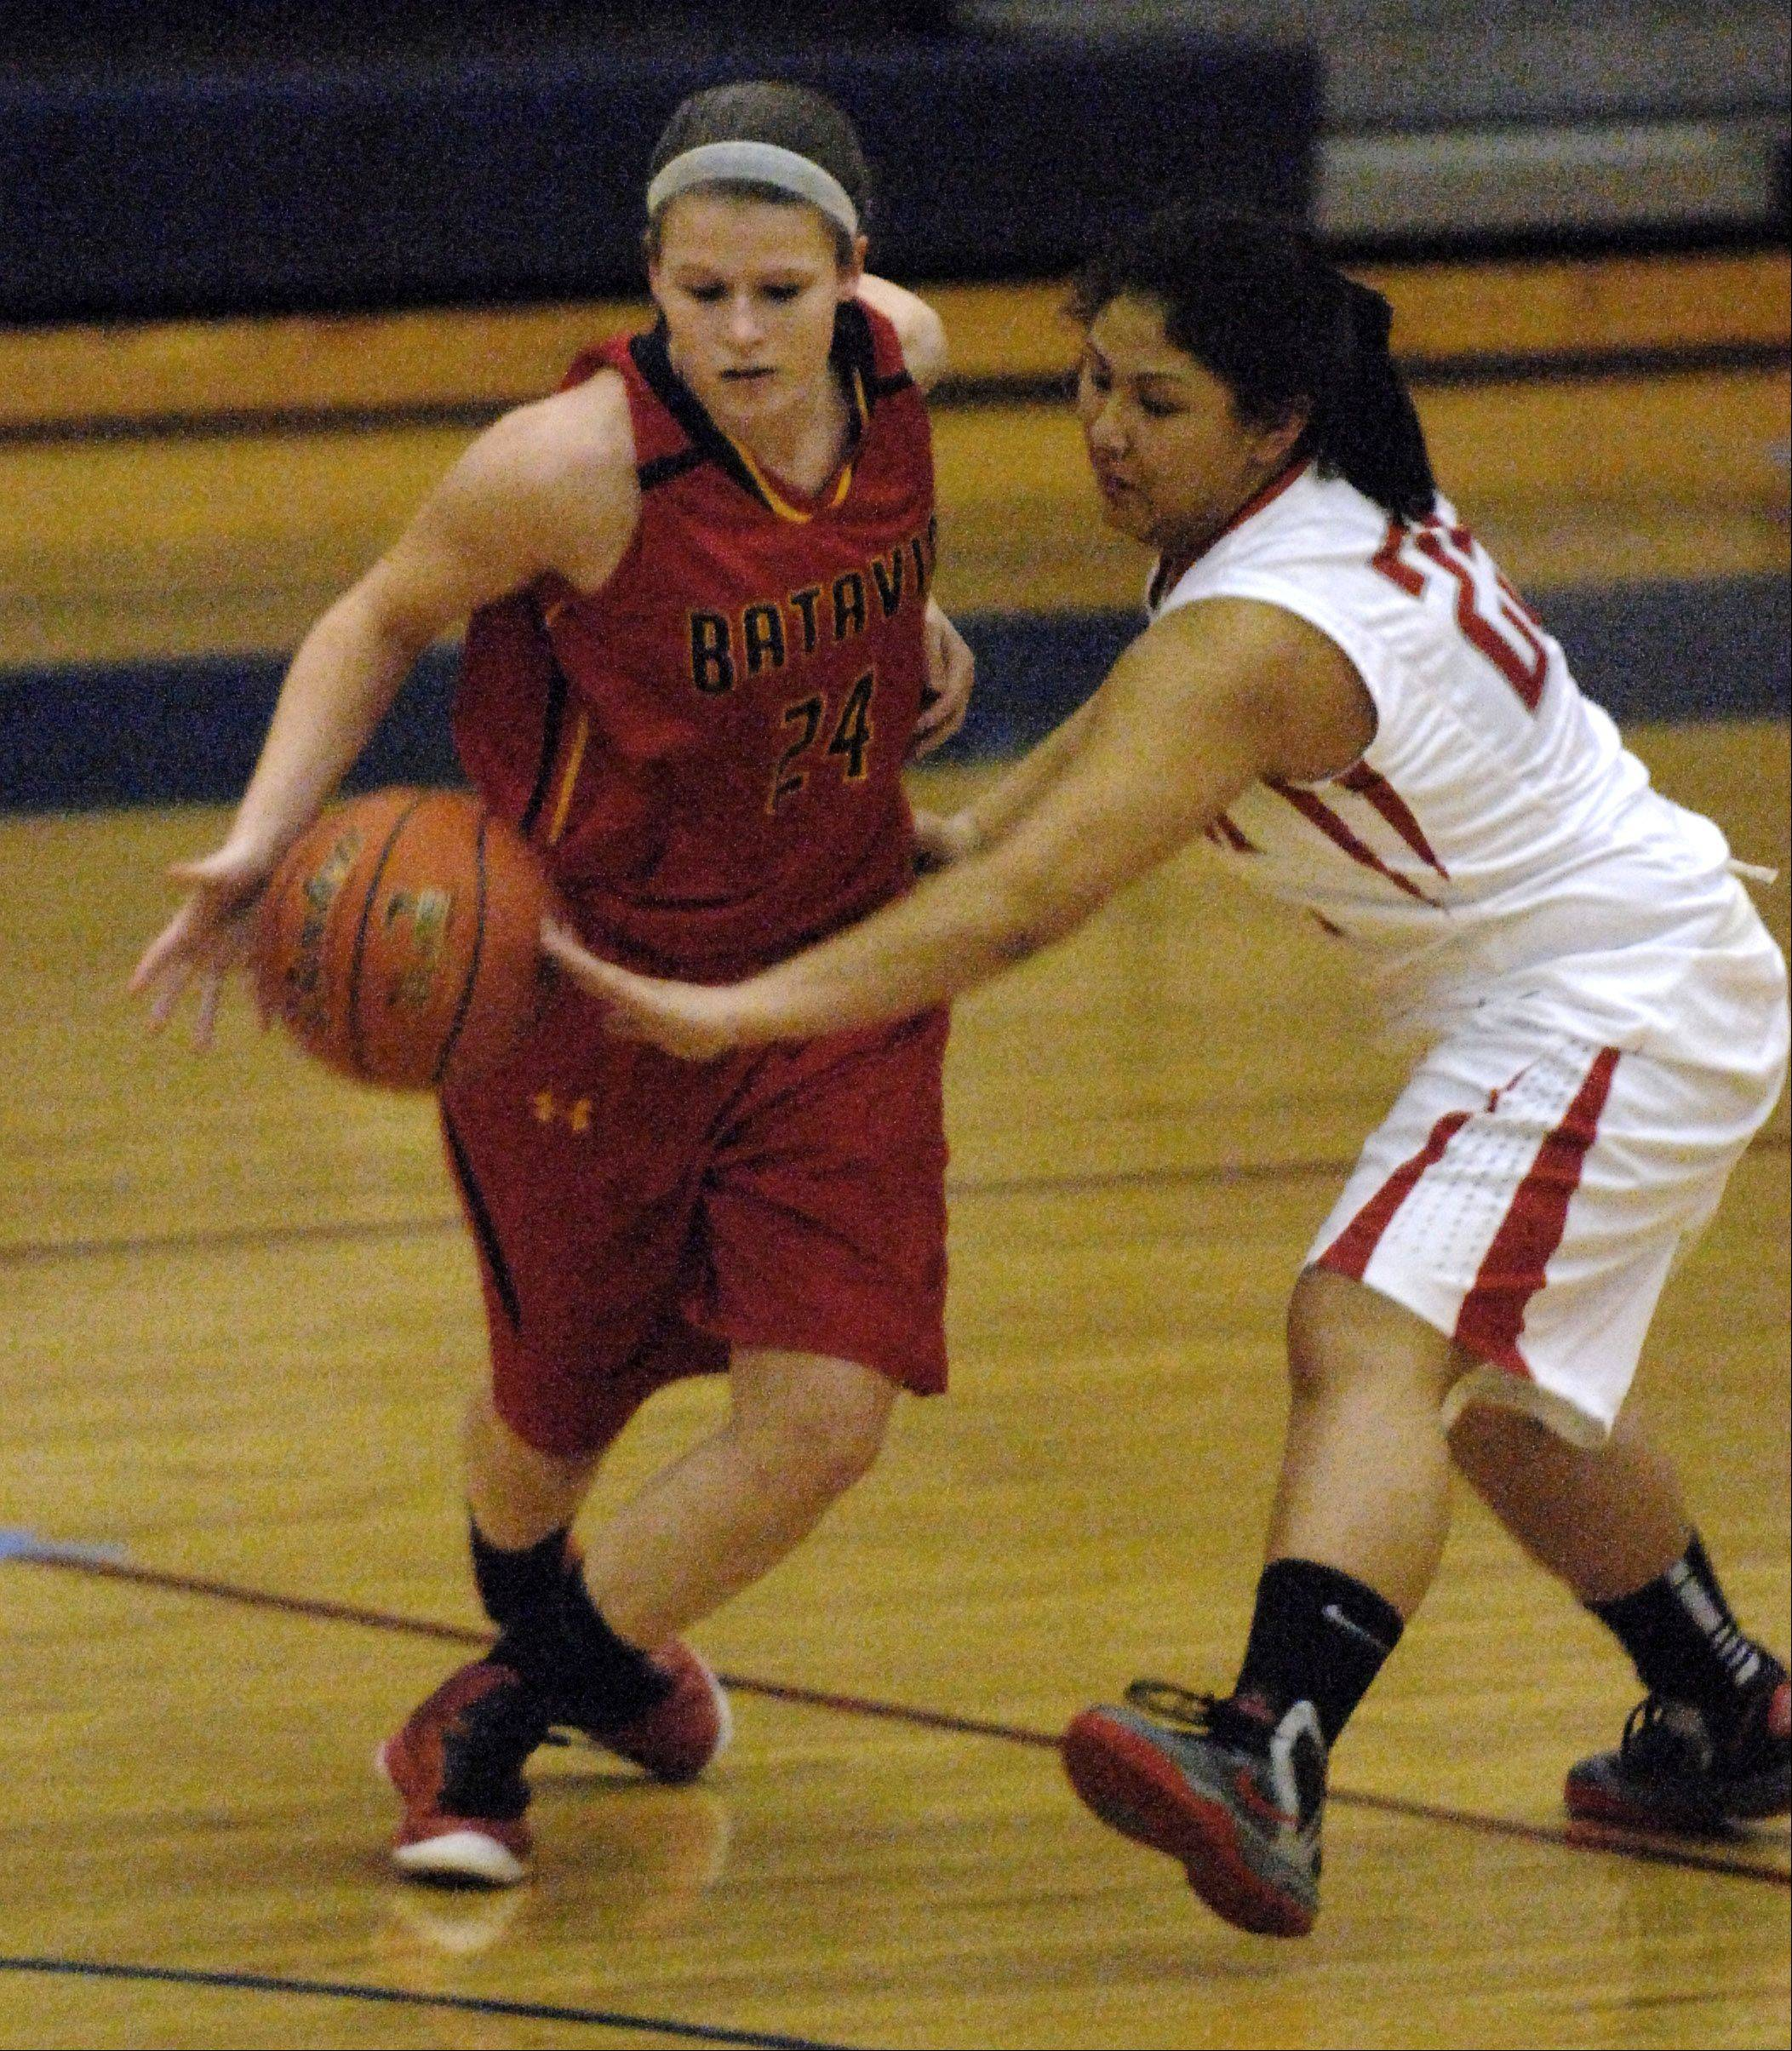 Batavia's Jenny Welday is pressured by South Elgin's Nadia Yang during Thursday's game in South Elgin.